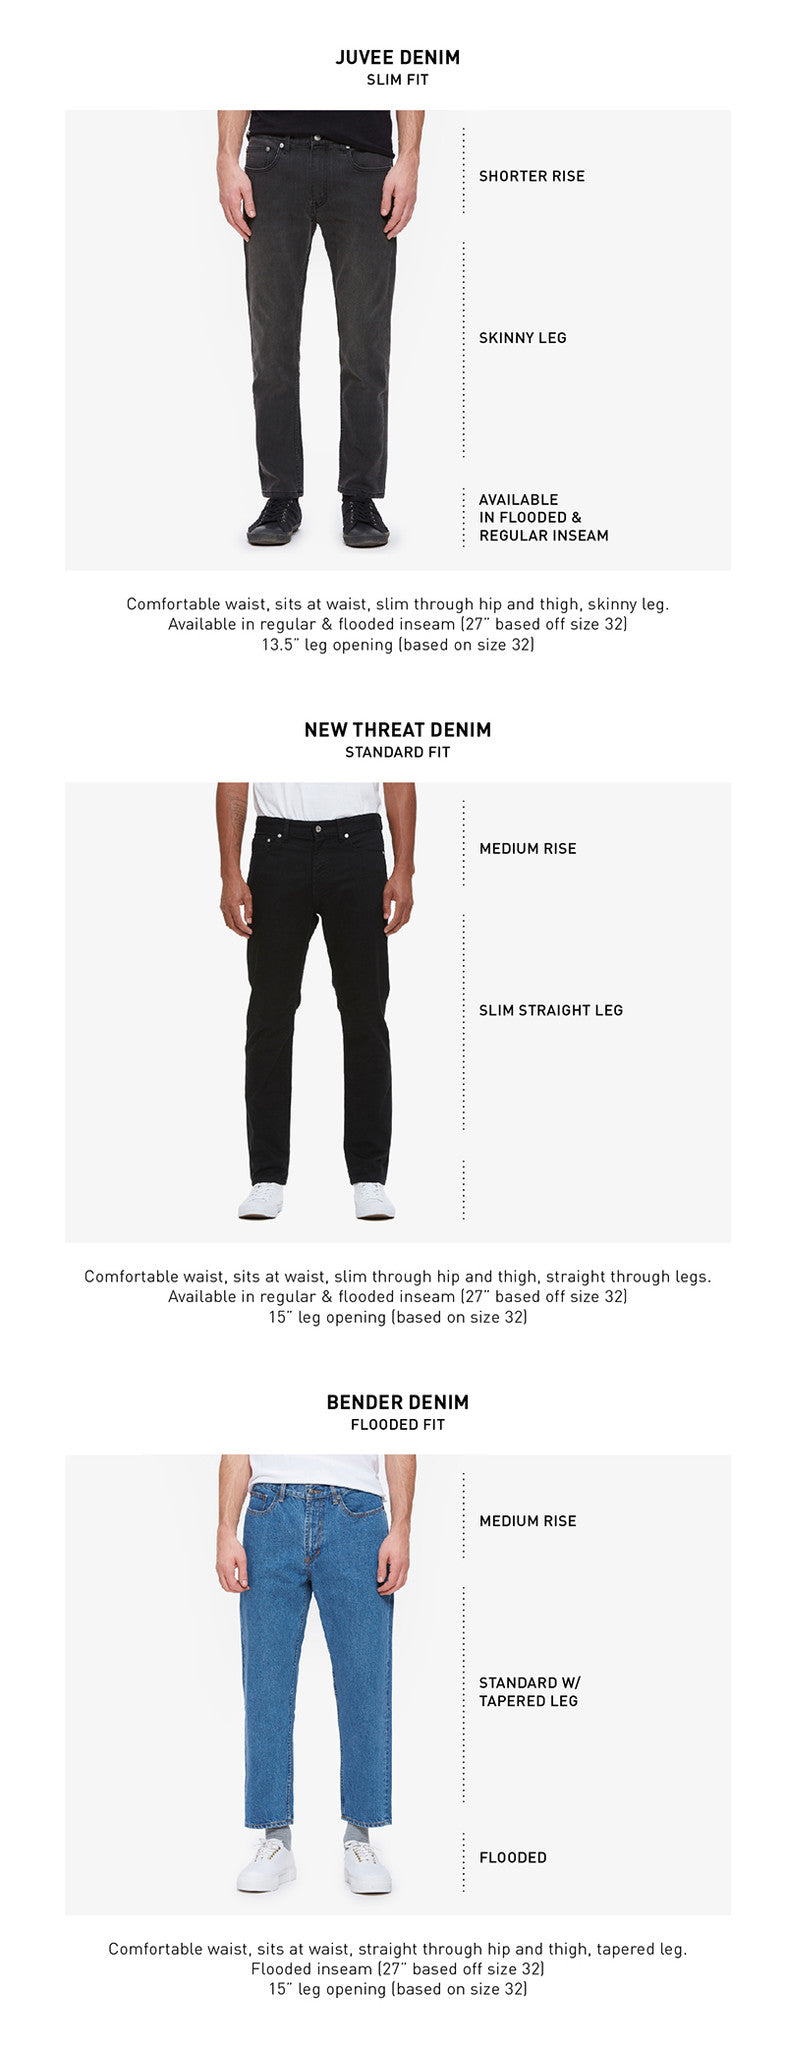 Men Denim Fit Guide